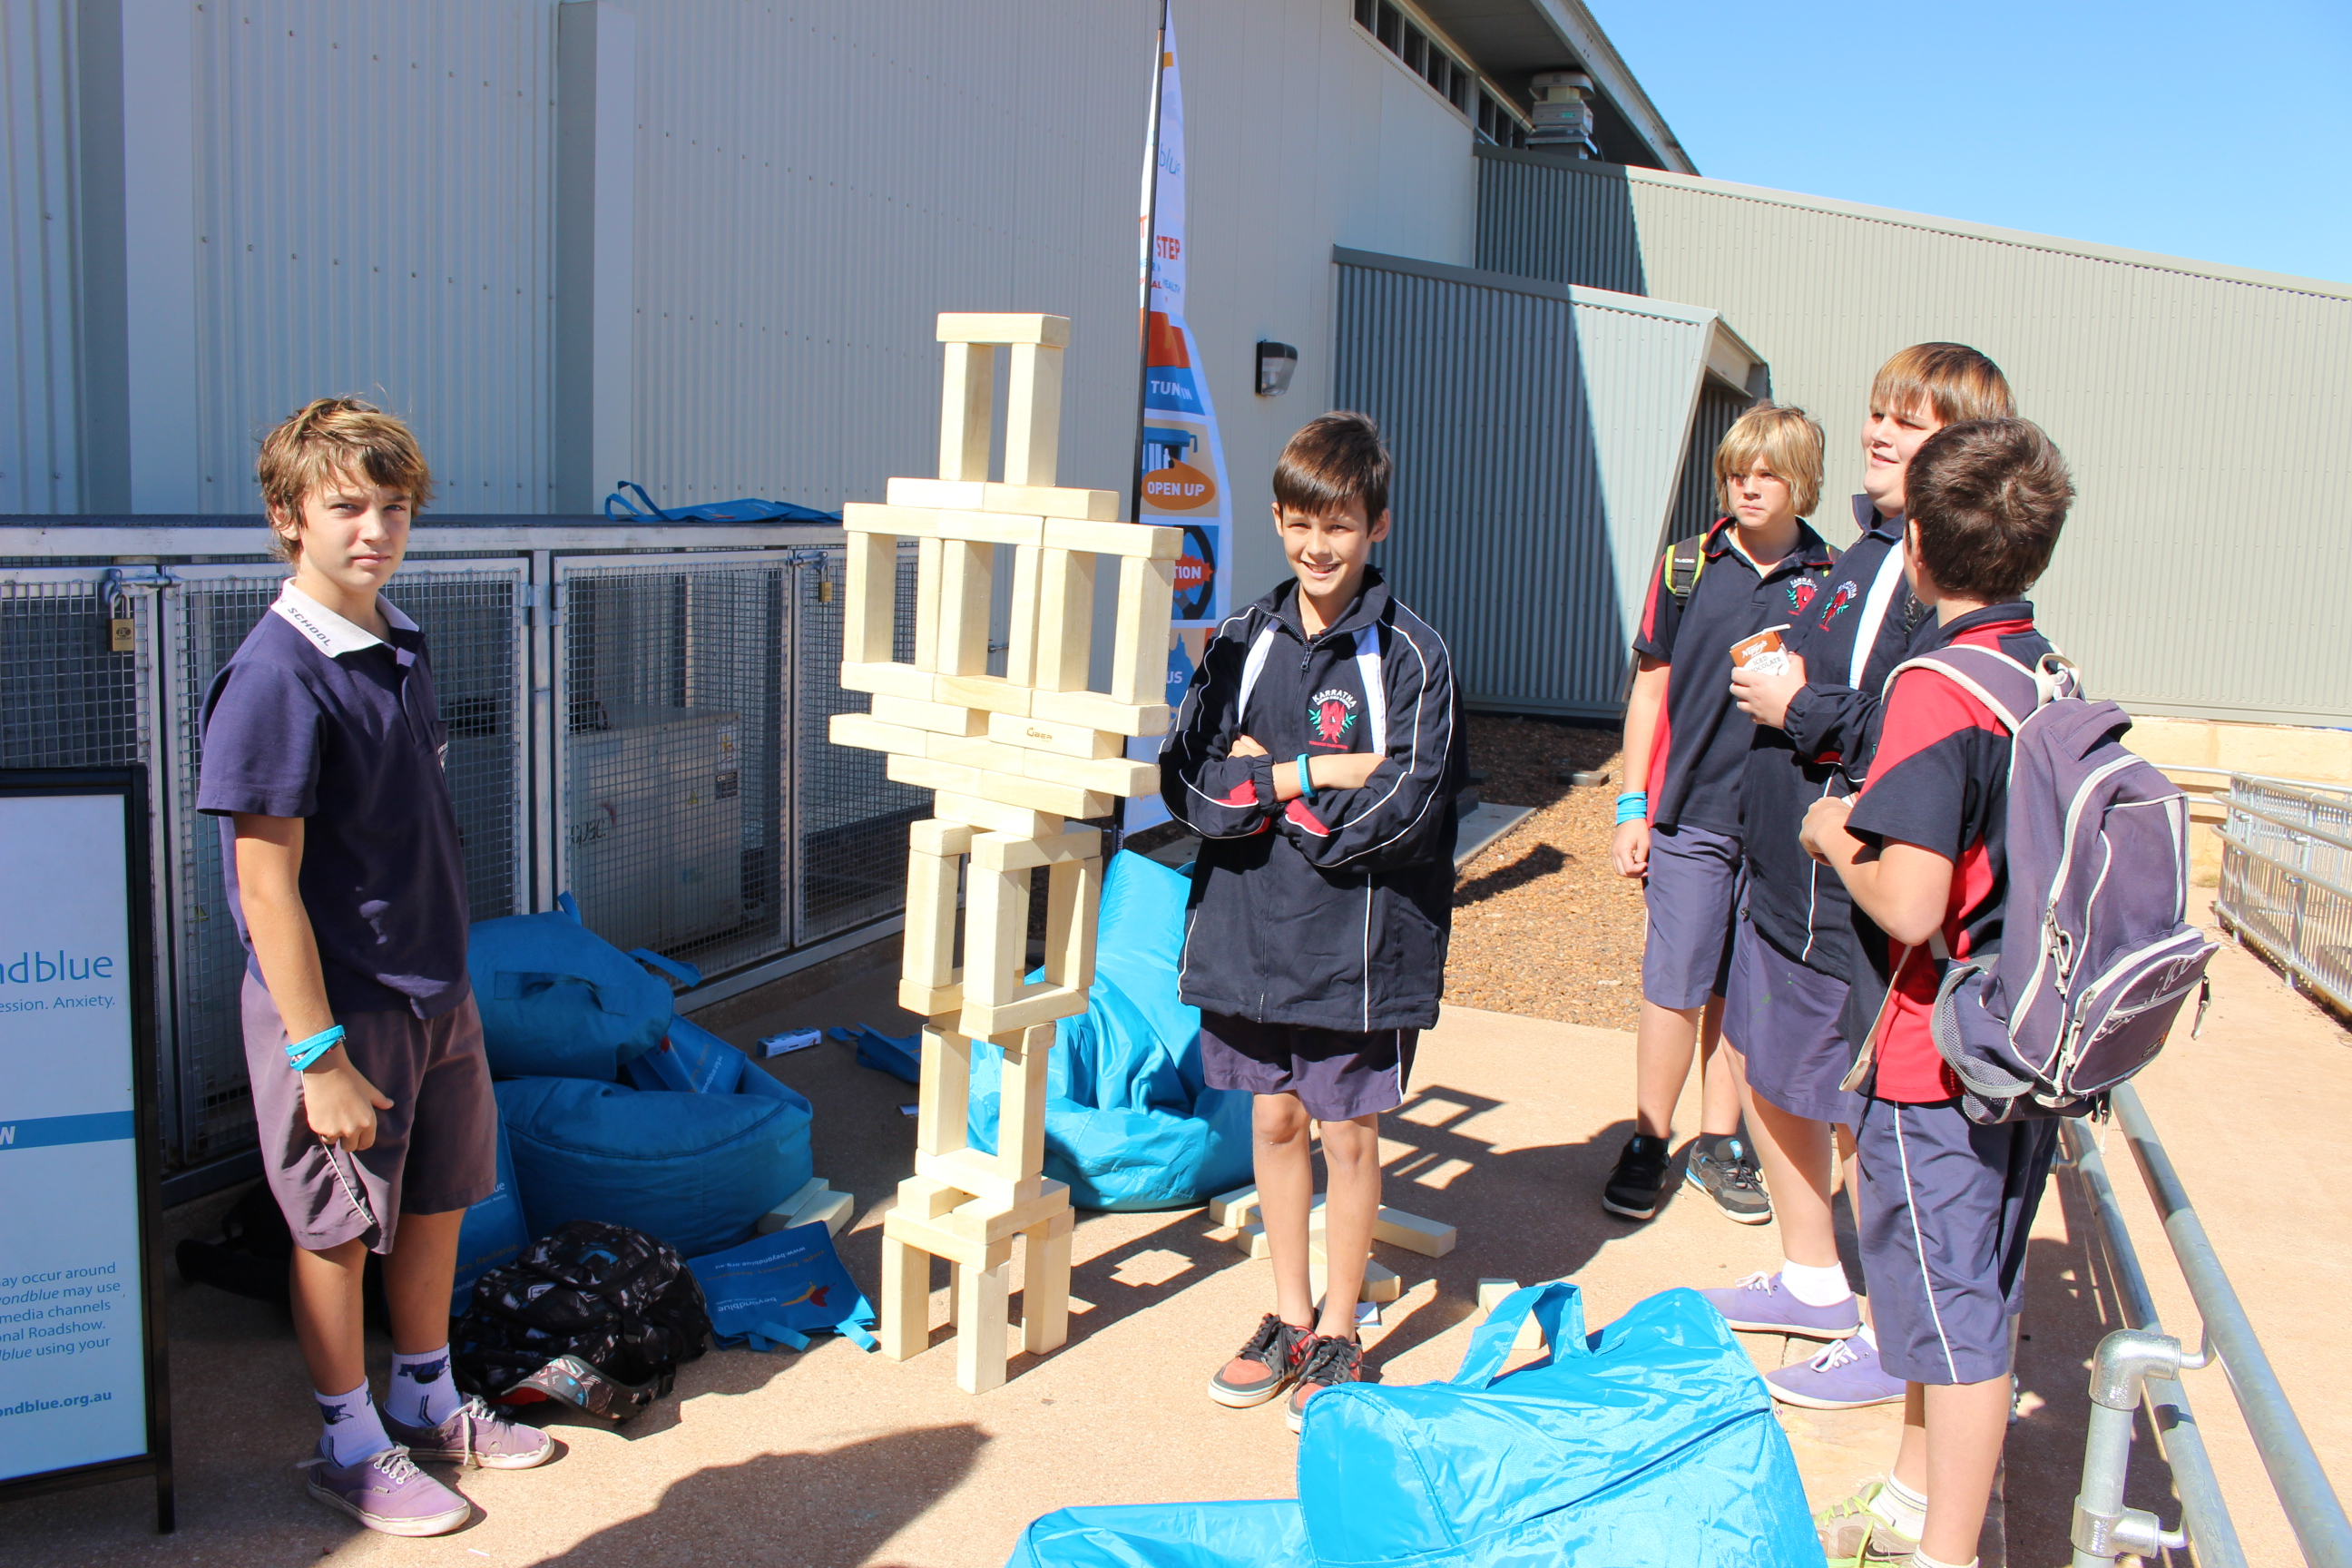 Students getting creative with the giant jenga in Karratha: WA.